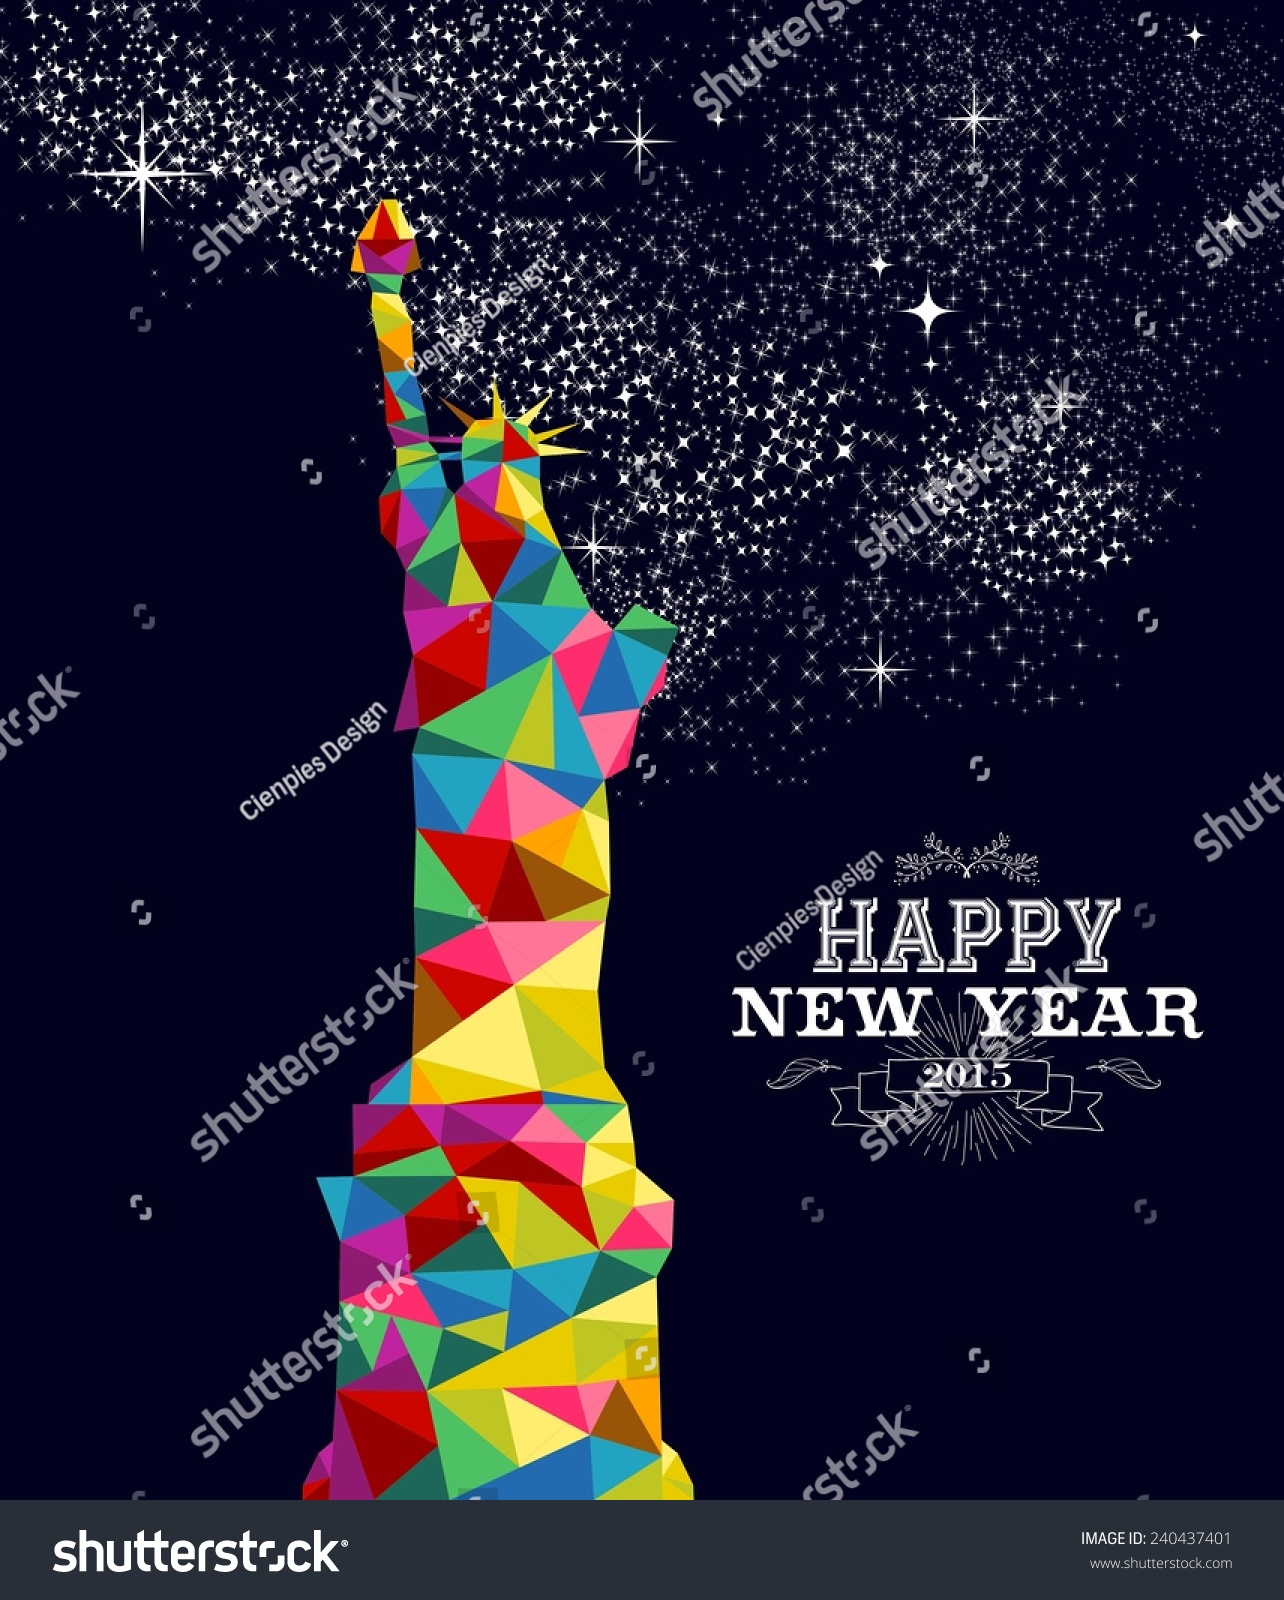 Happy New Year 2015 Greeting Card Stock Illustration 240437401